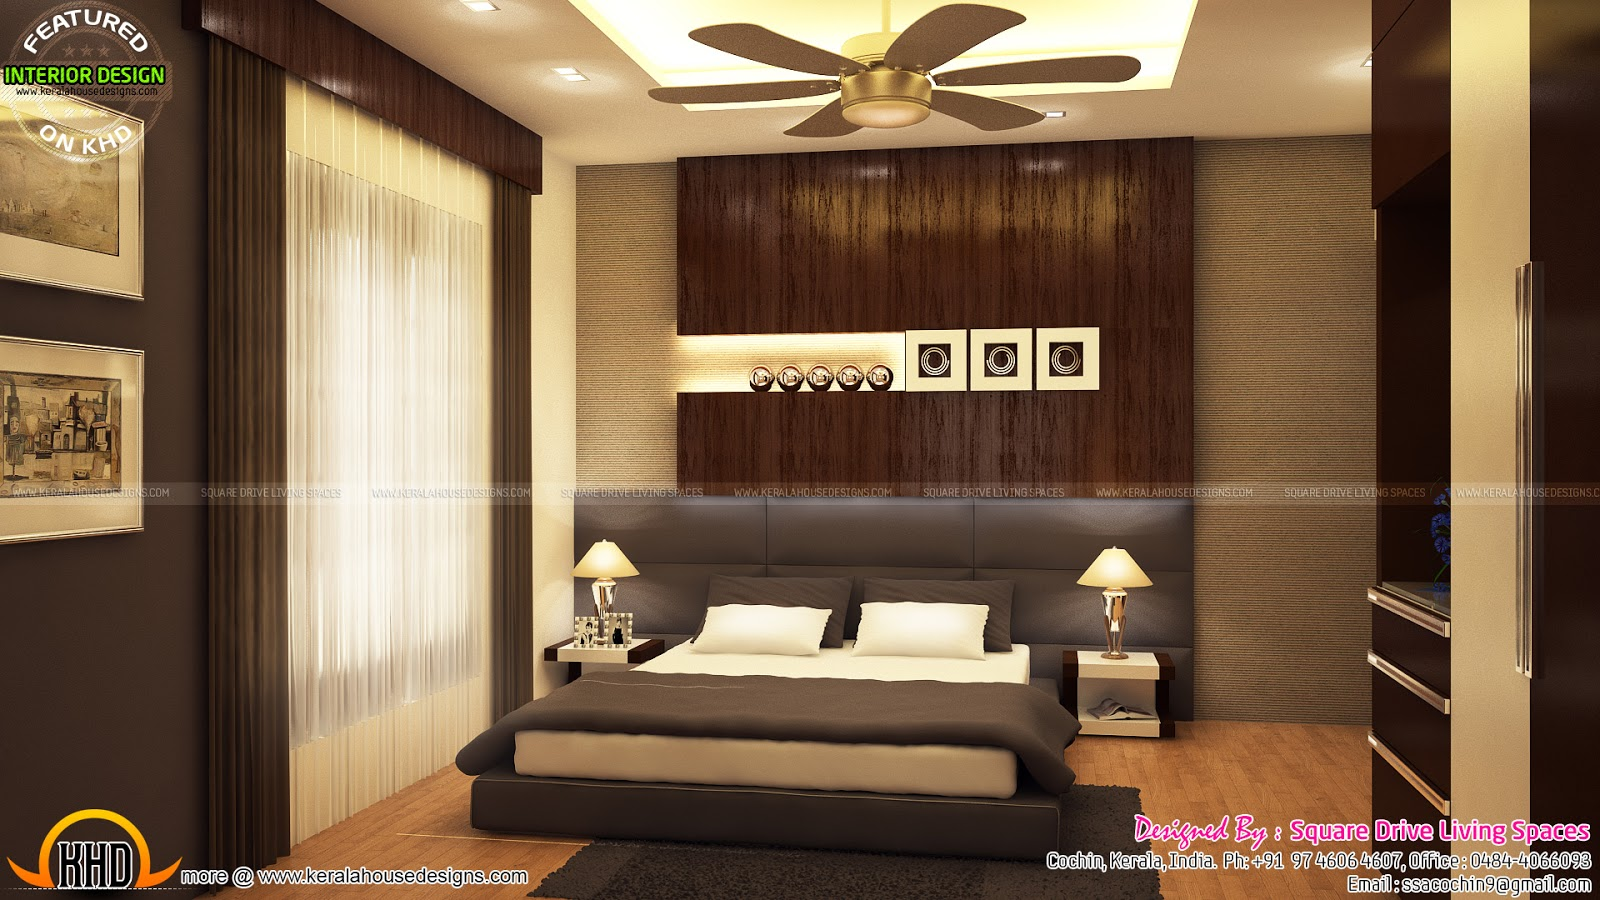 Interior designs of master bedroom, living, kitchen and